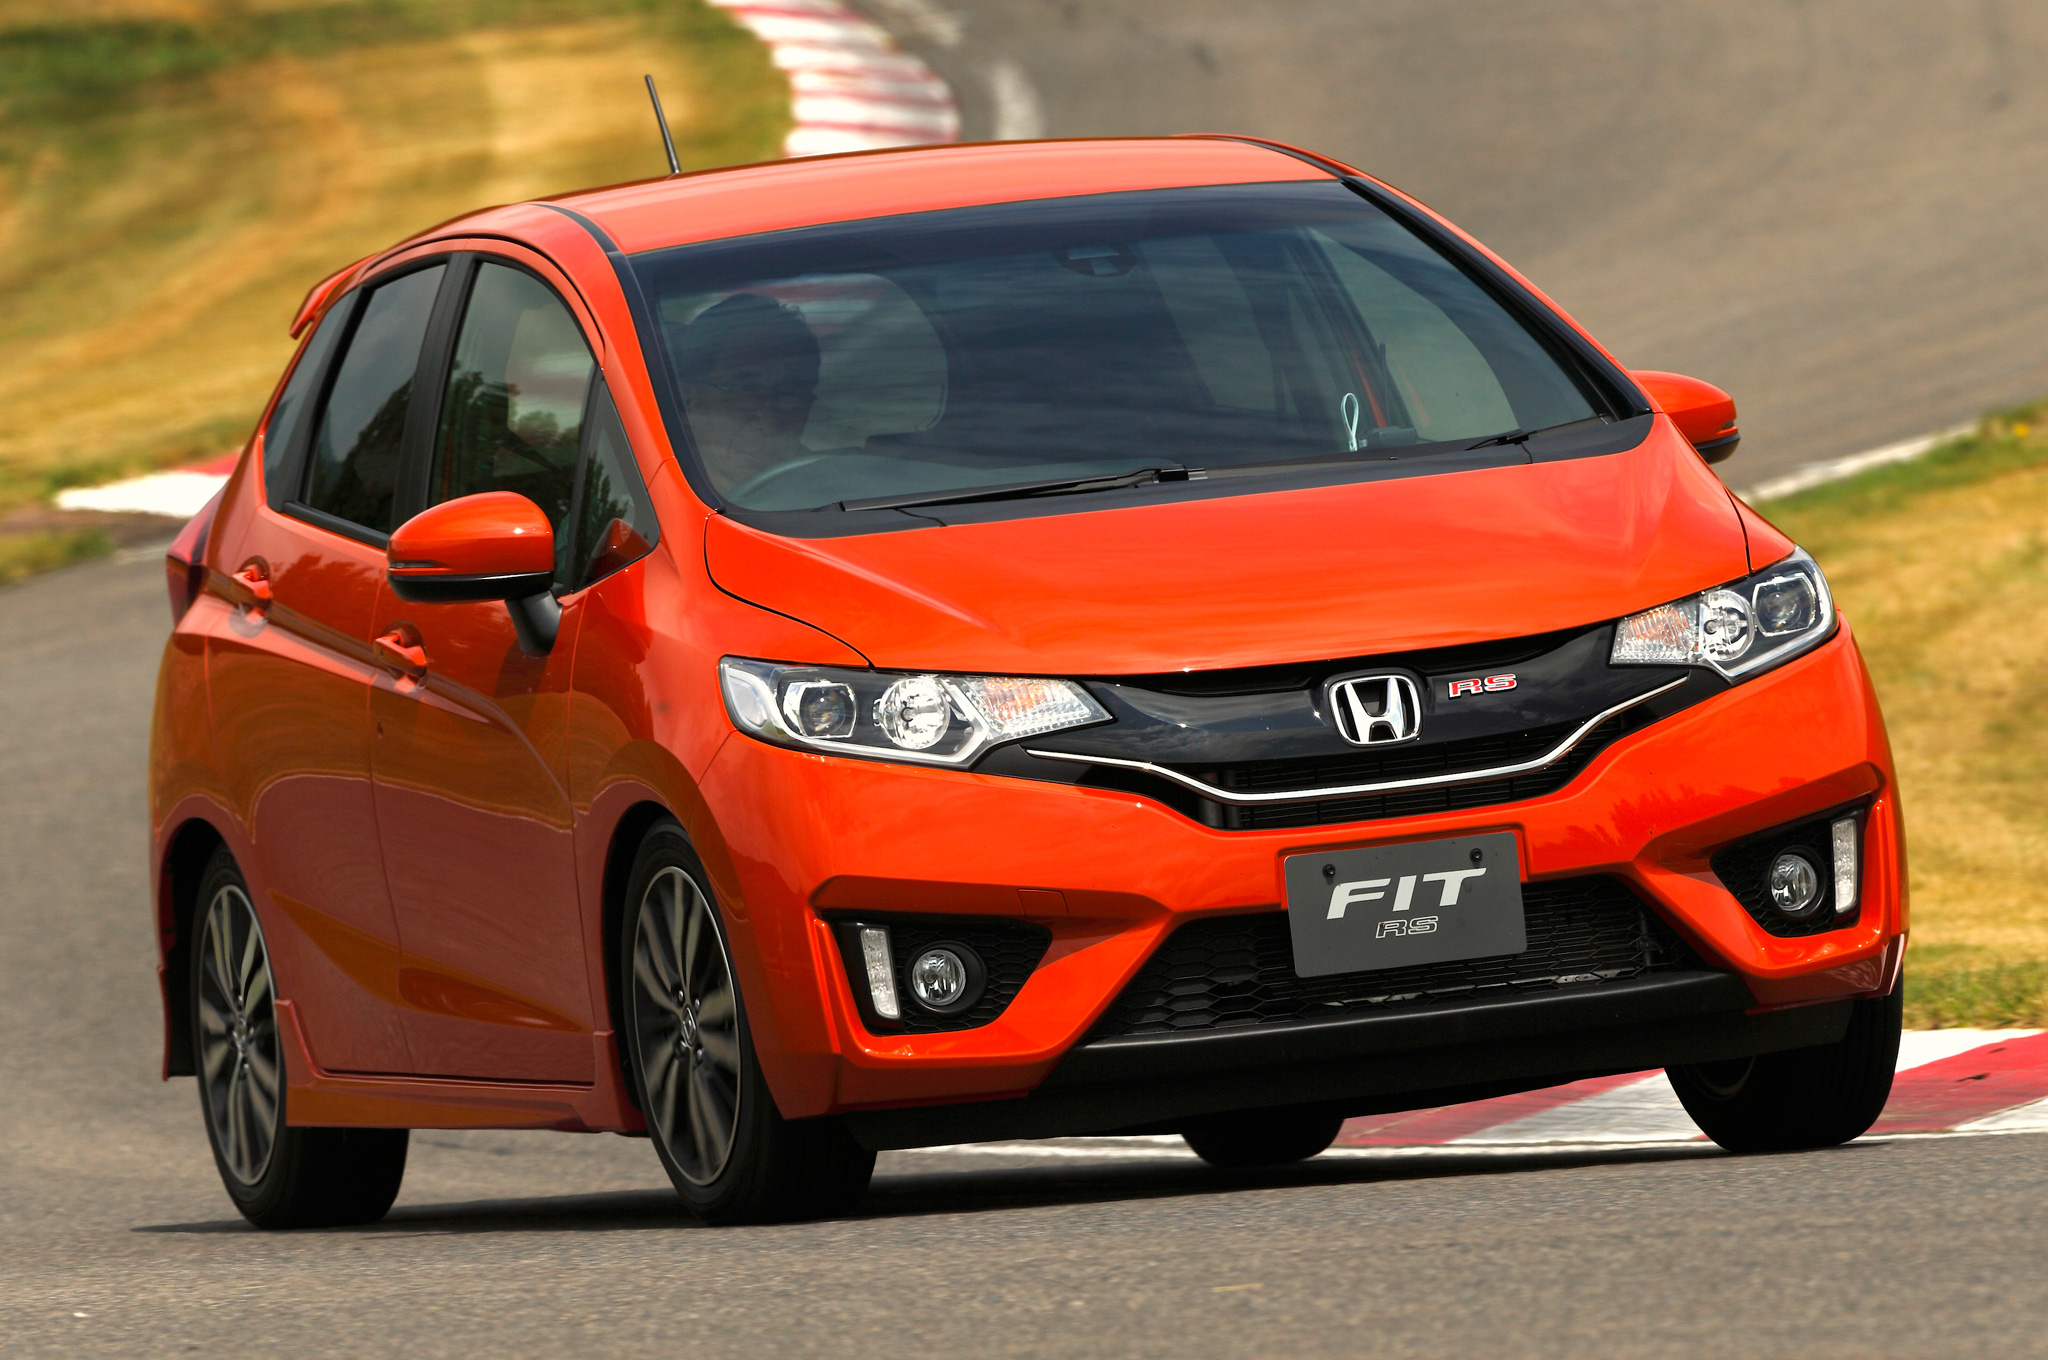 Collision coverage for a Honda Fit at $395